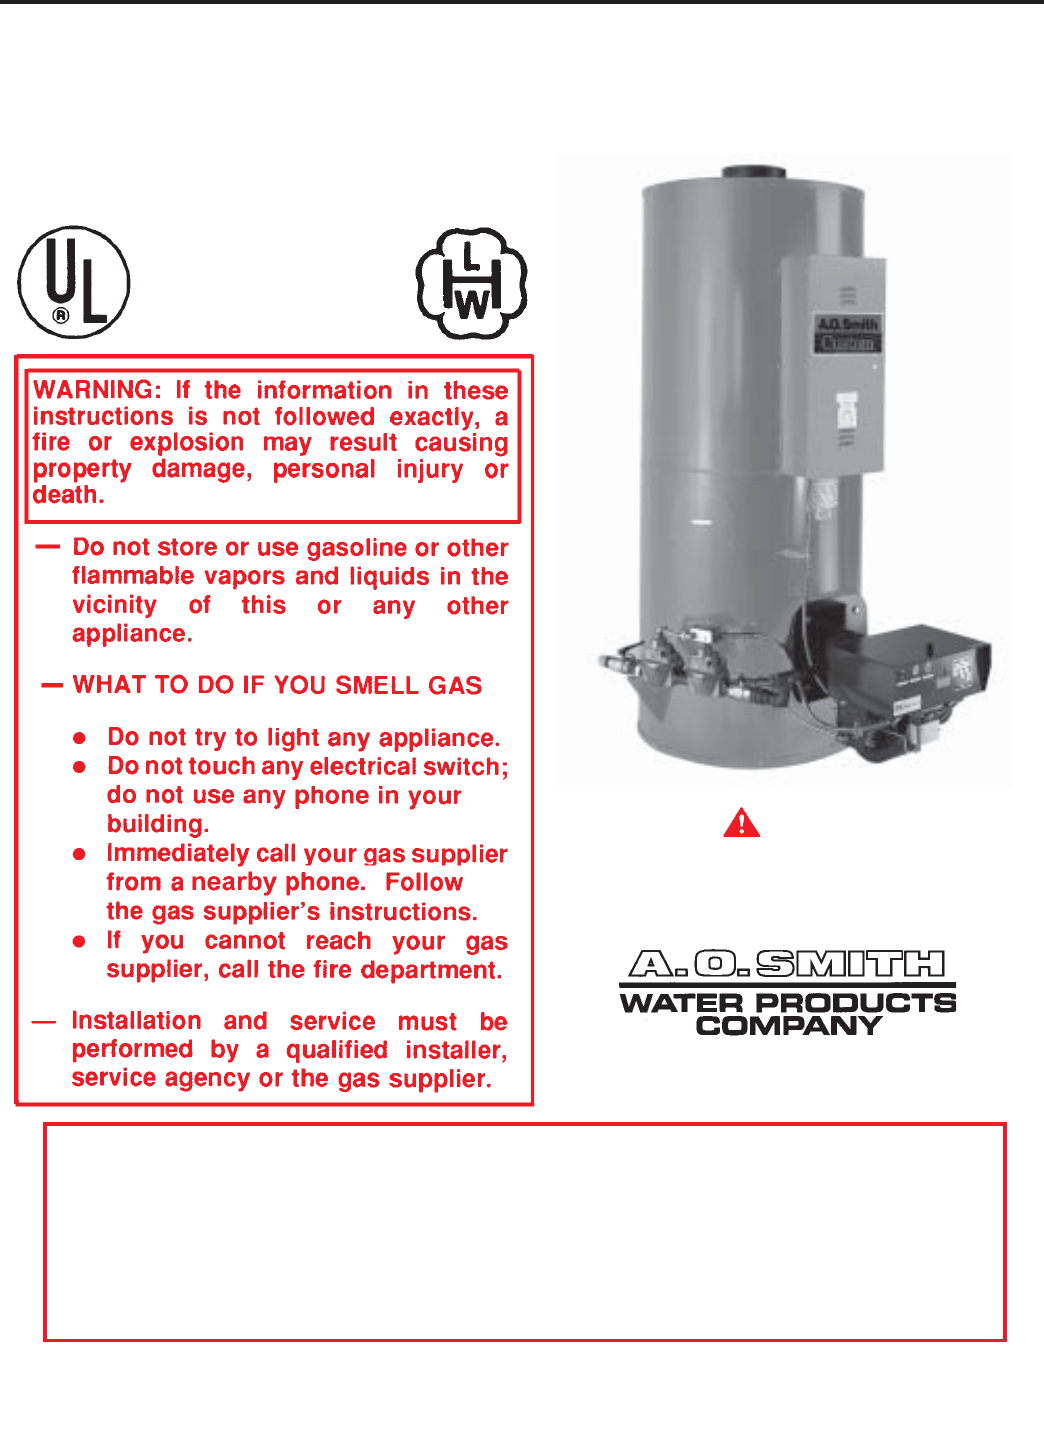 A o smith water heater air filter